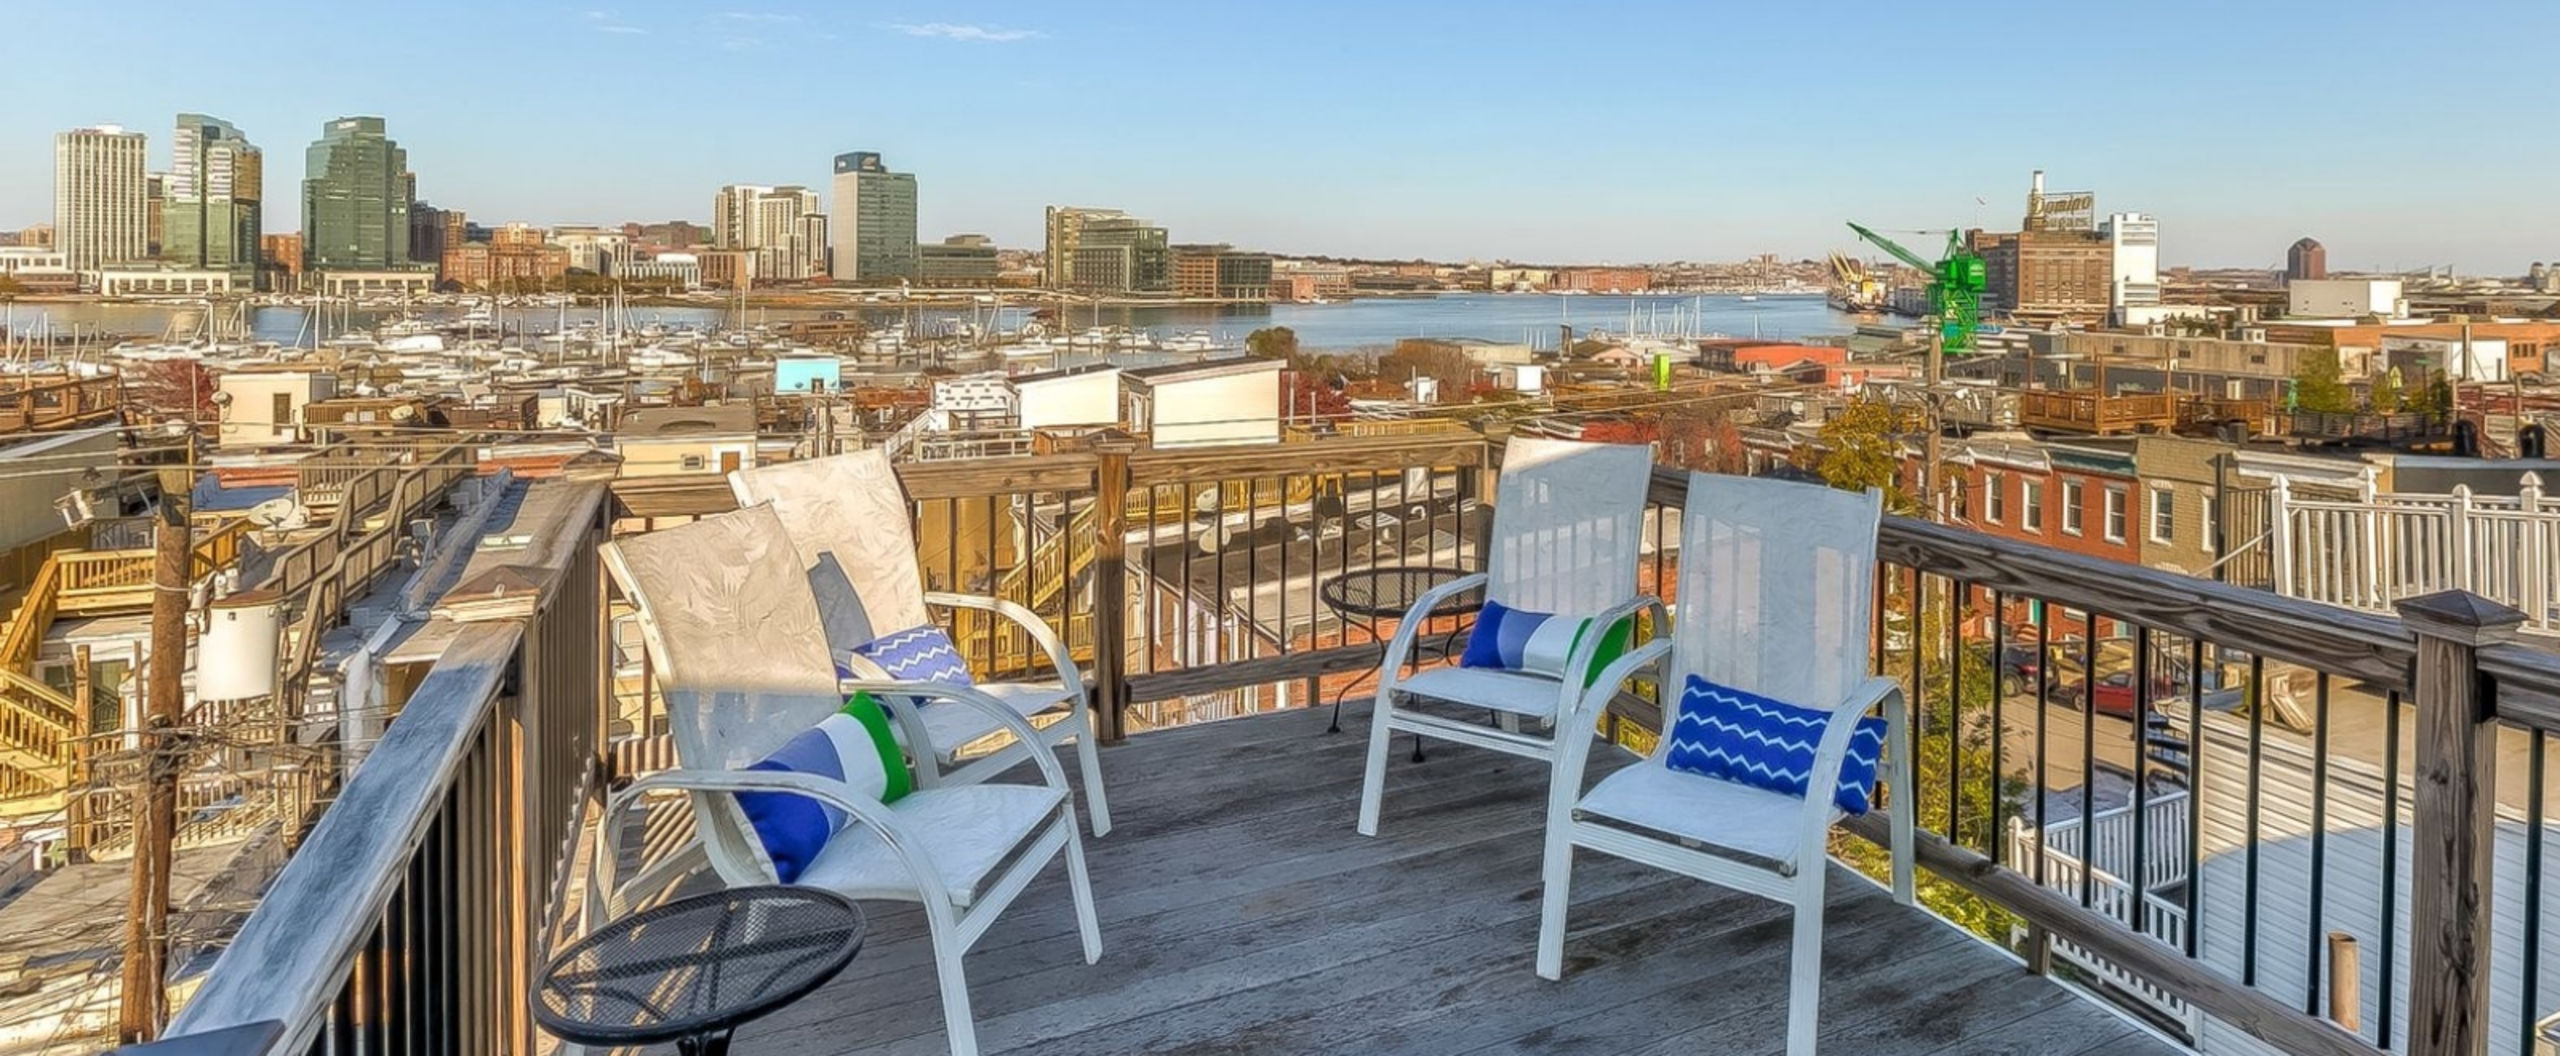 634 East Fort Avenue - Available